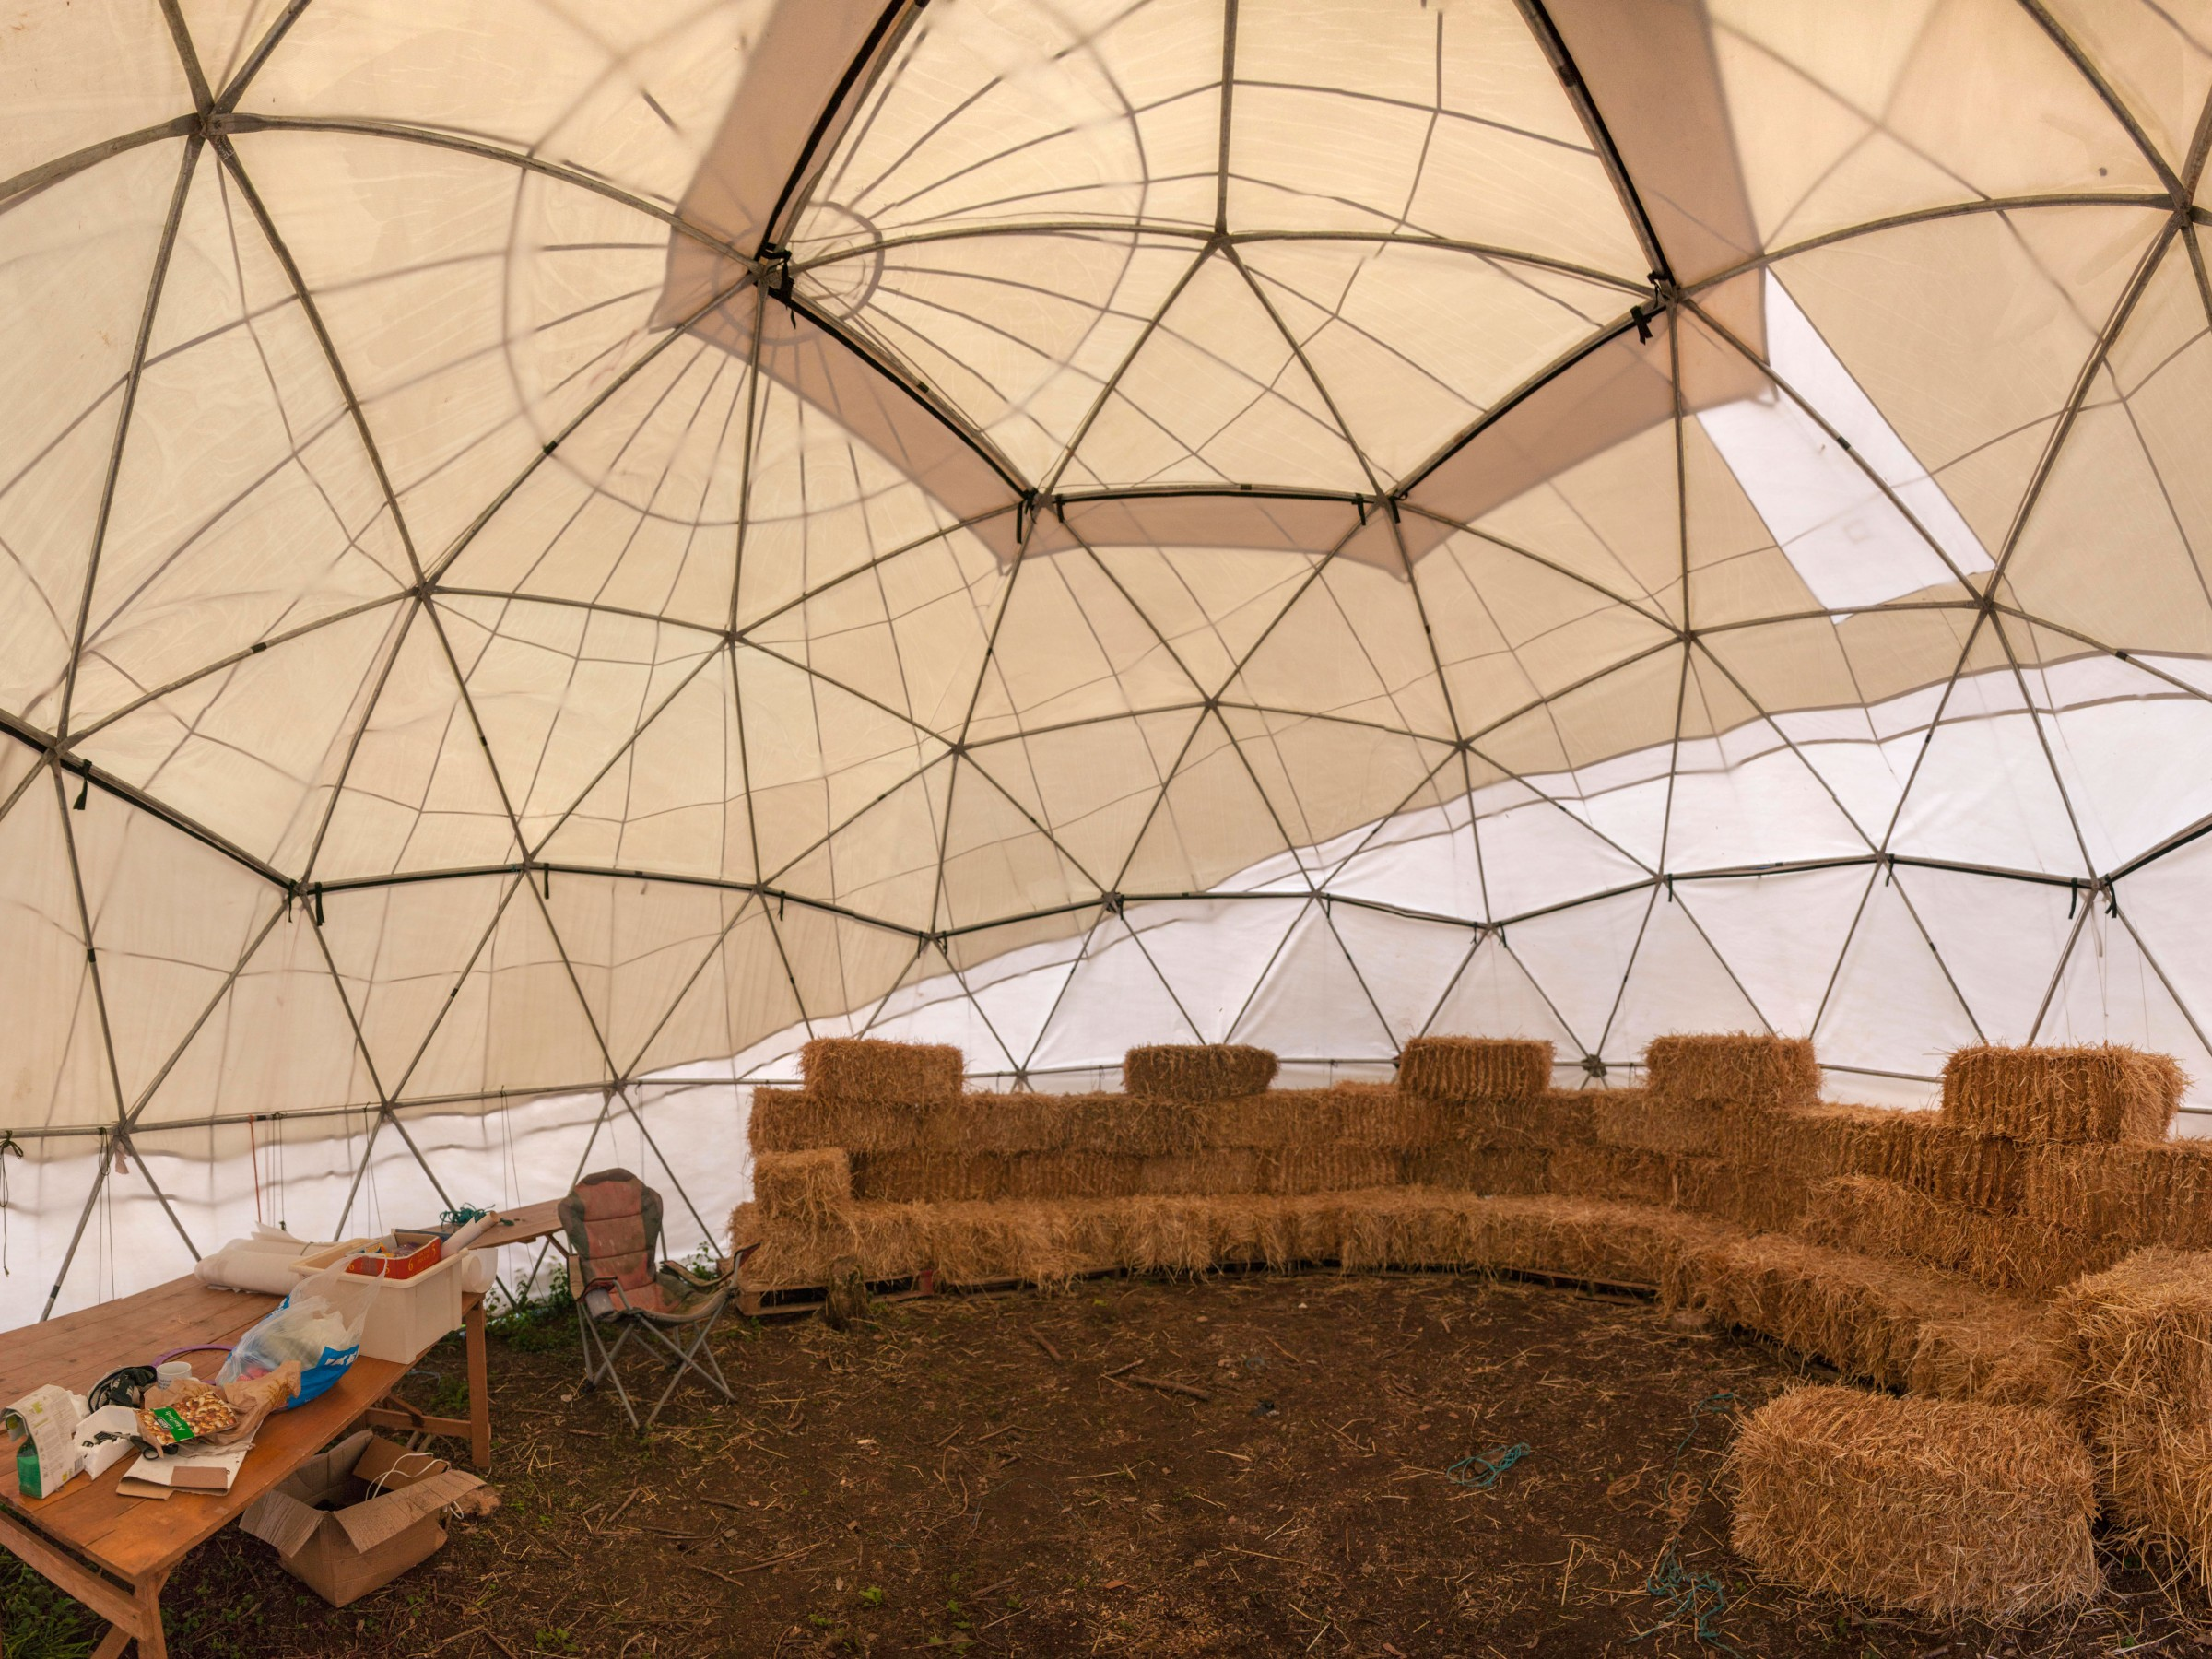 Dome-with-Straw-Bales-pano